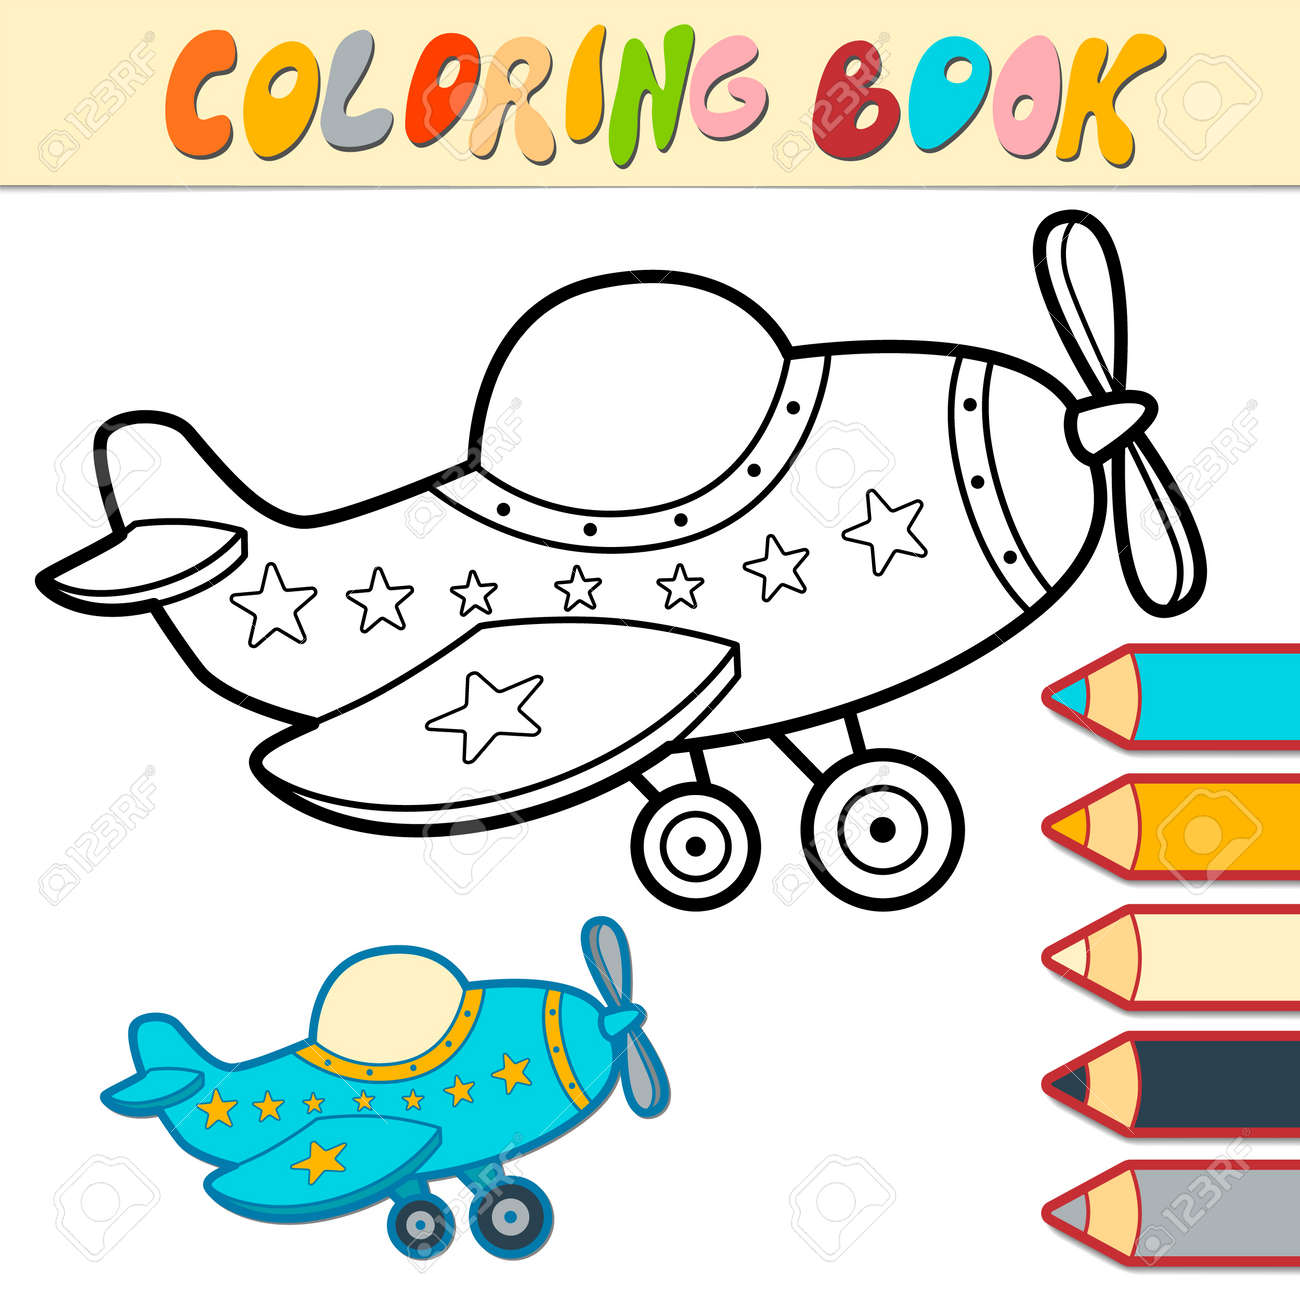 Coloring book or page for kids. plane black and white vector illustration - 168779461